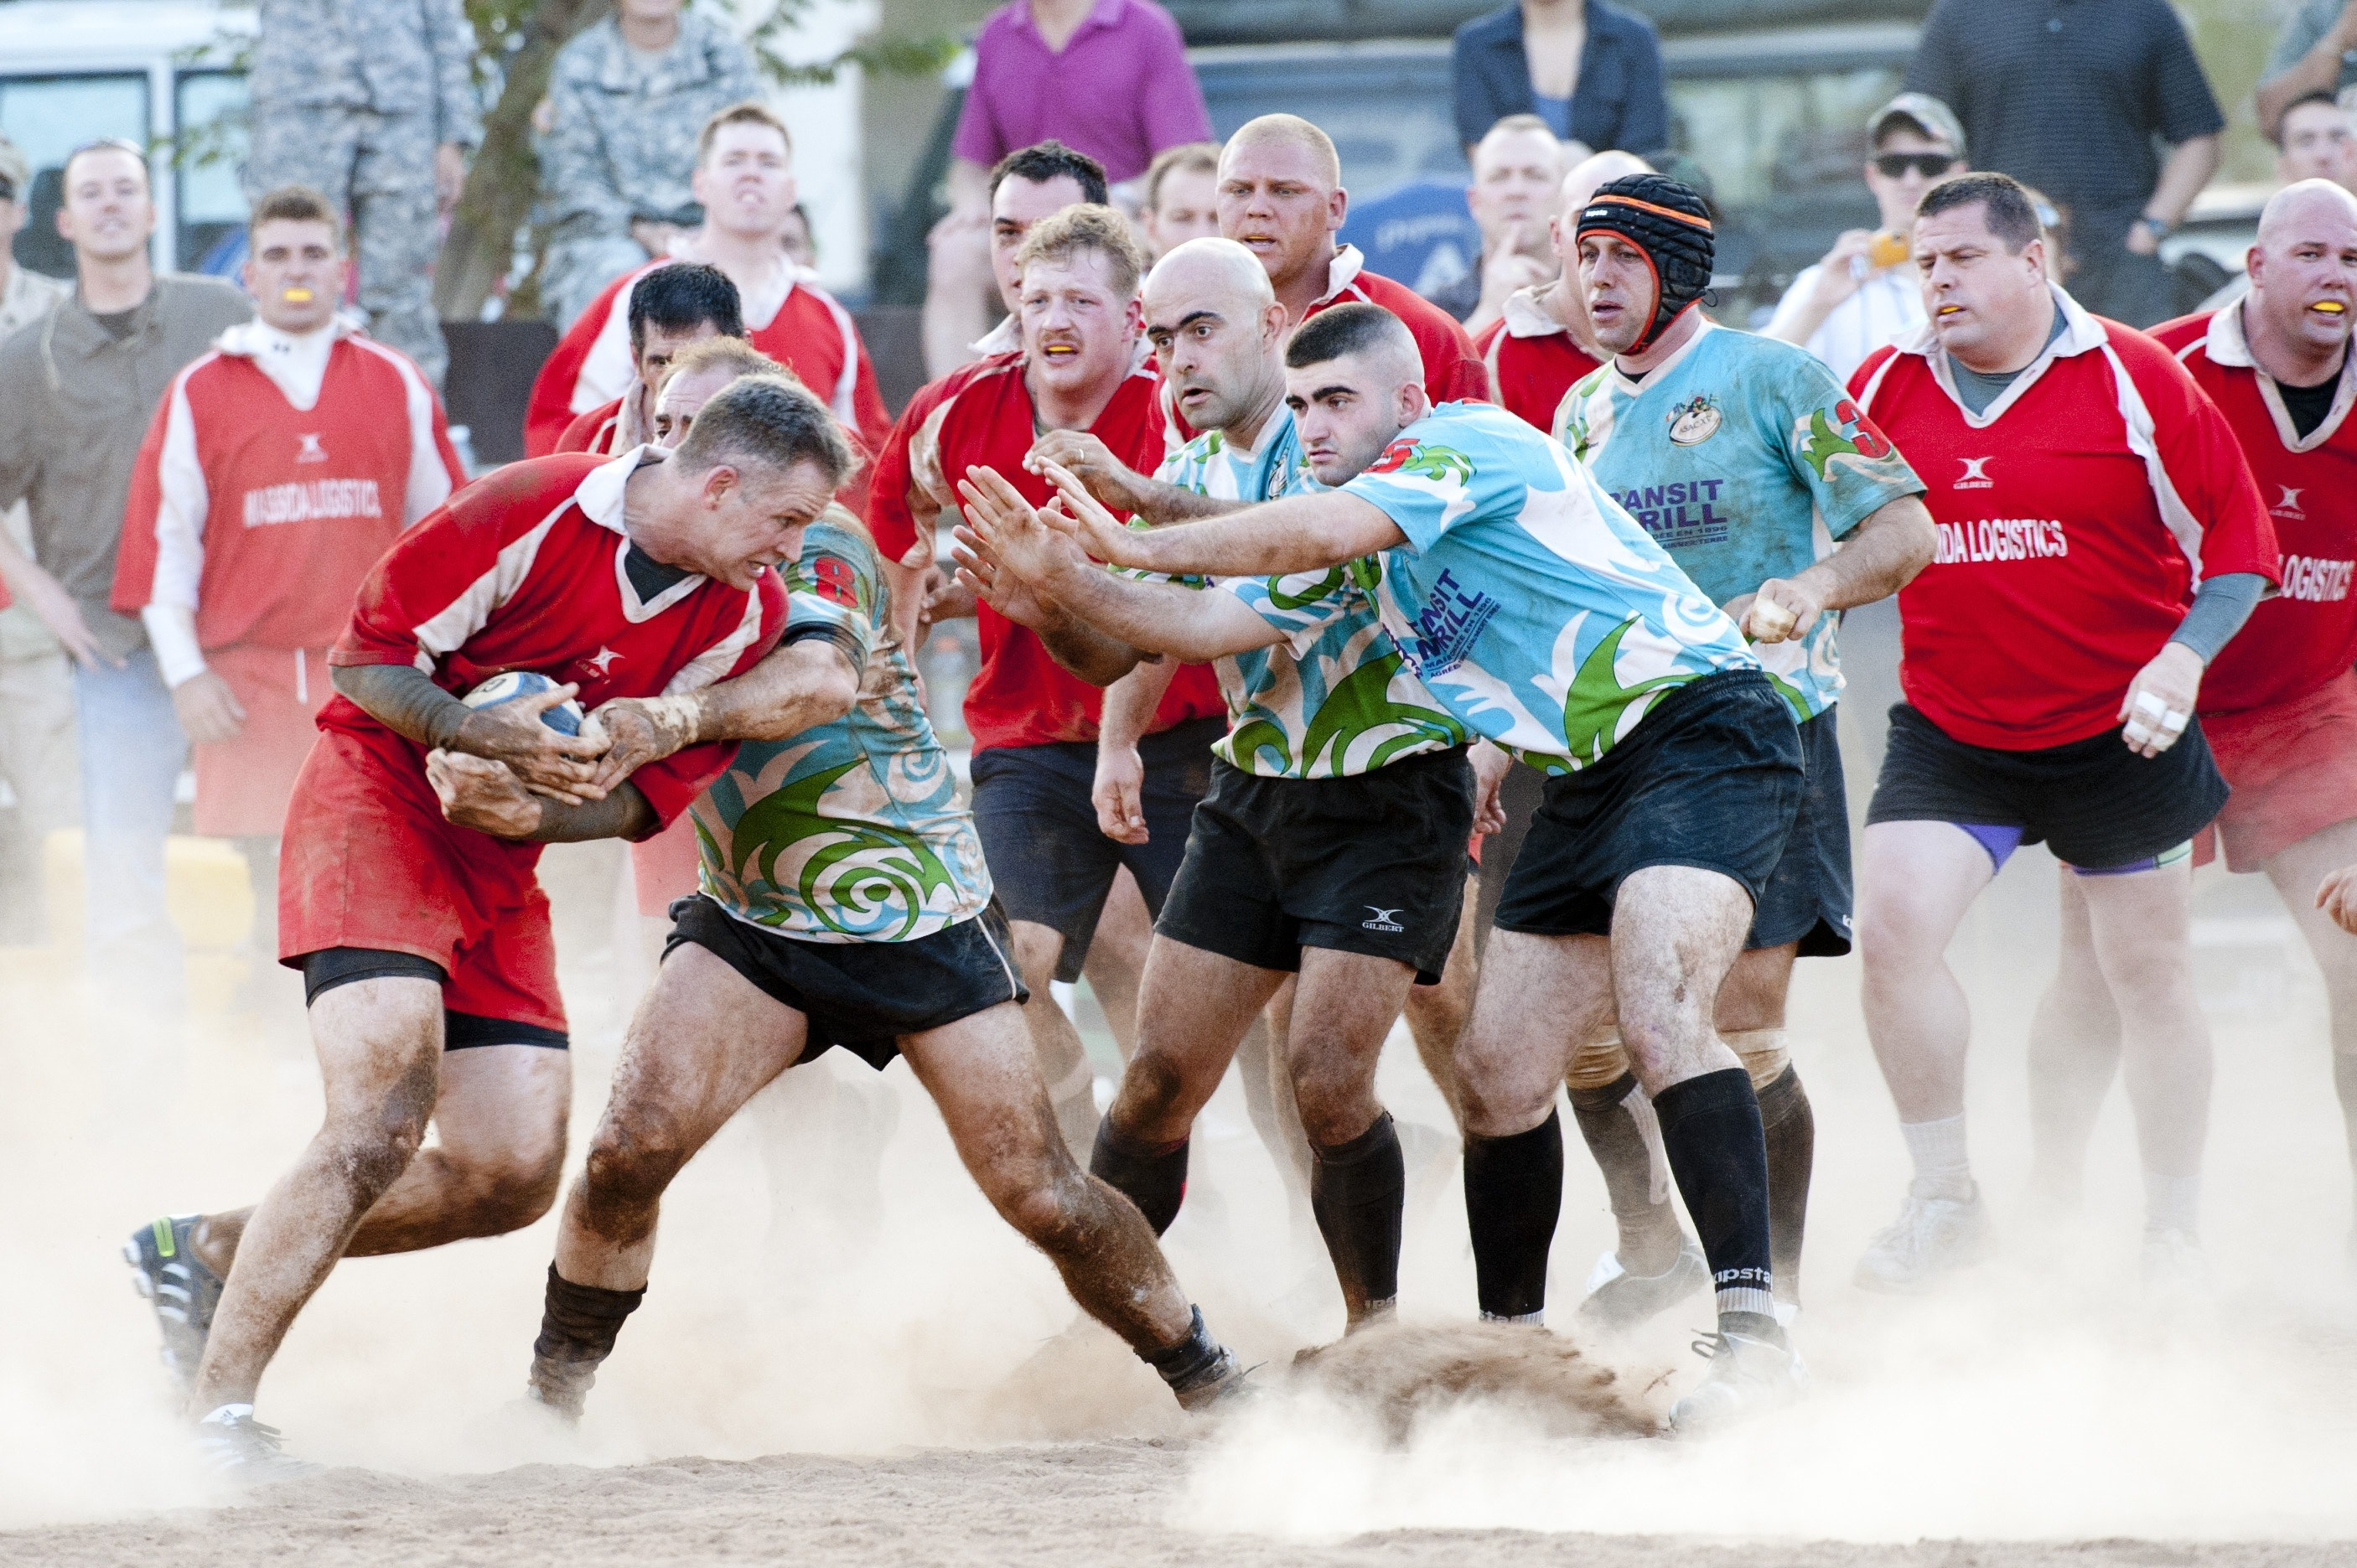 Rugby players photo